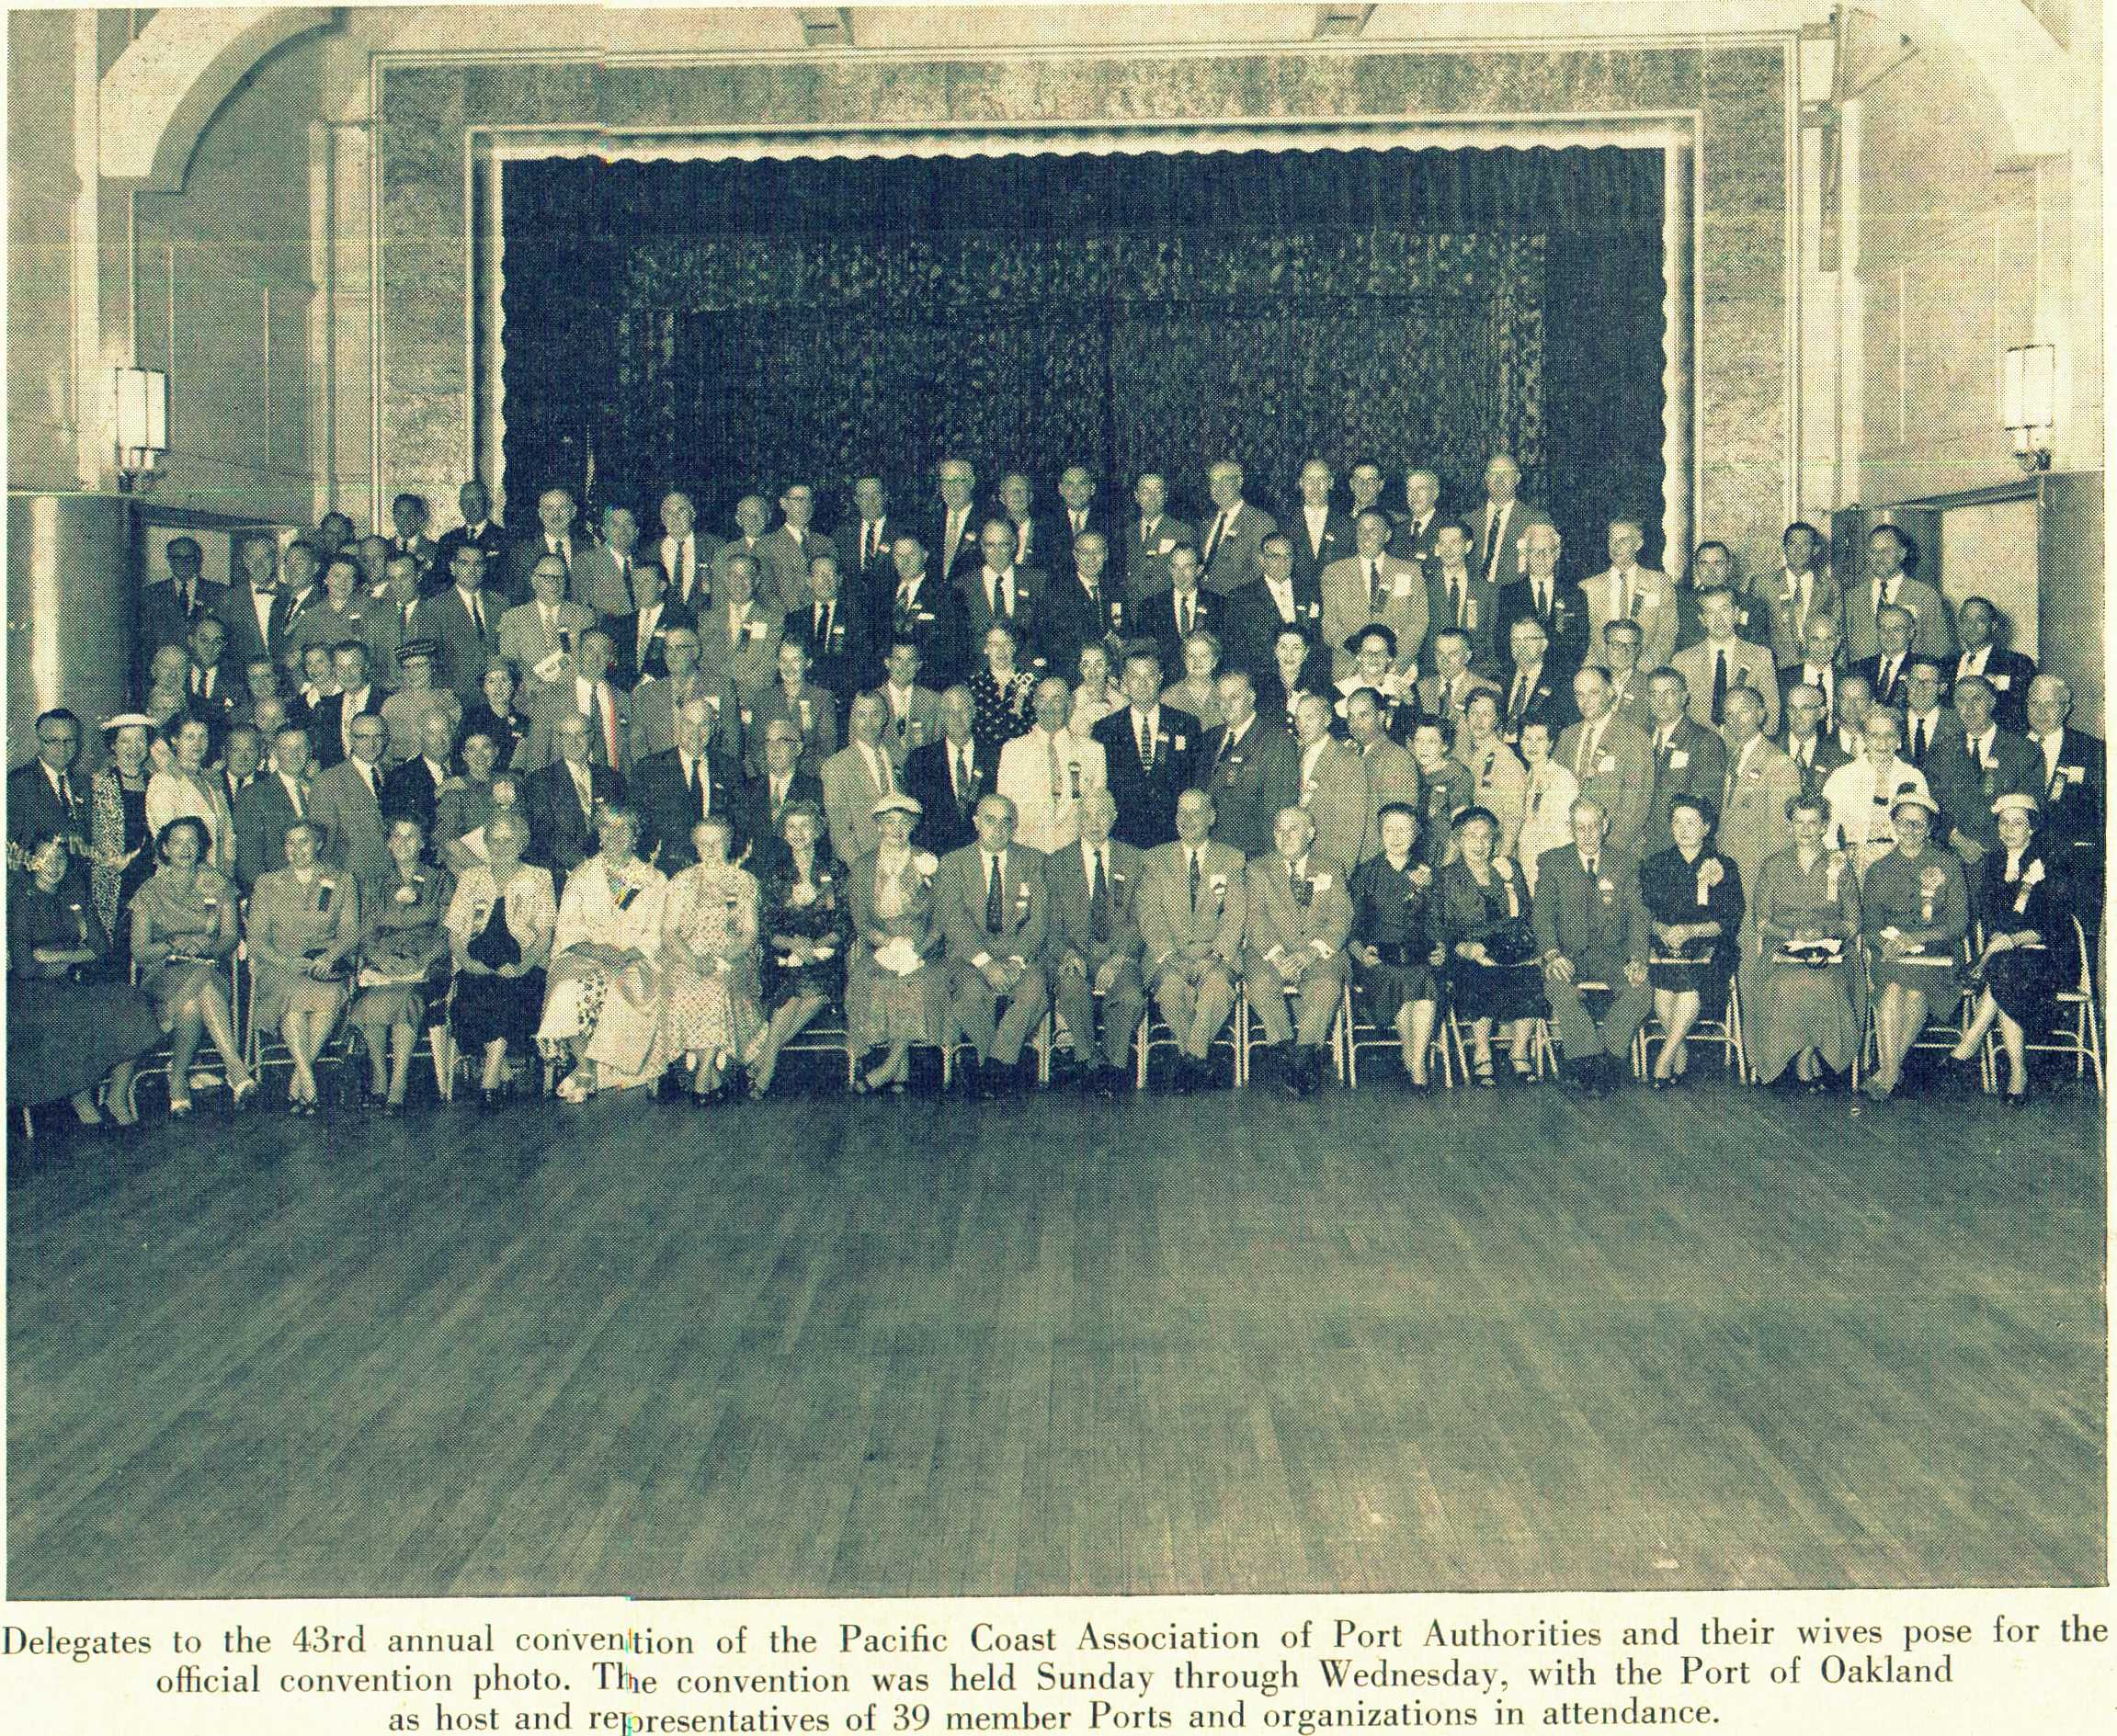 1956 Annual Conference, Oakland